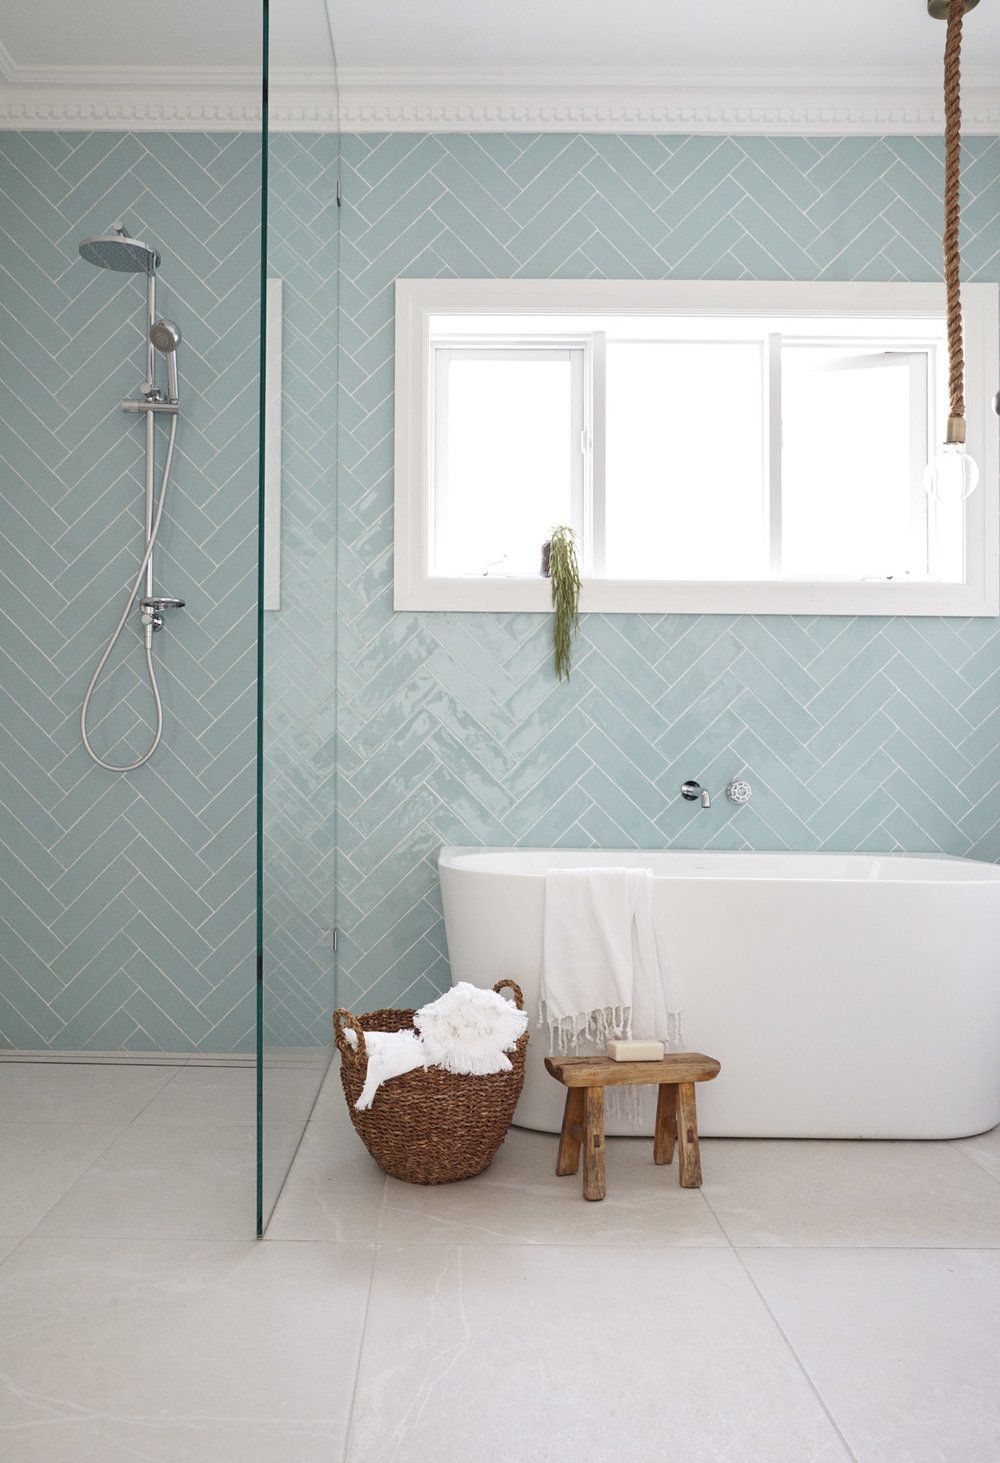 designers} Three Birds Renovations, Australia | Herringbone tile ...